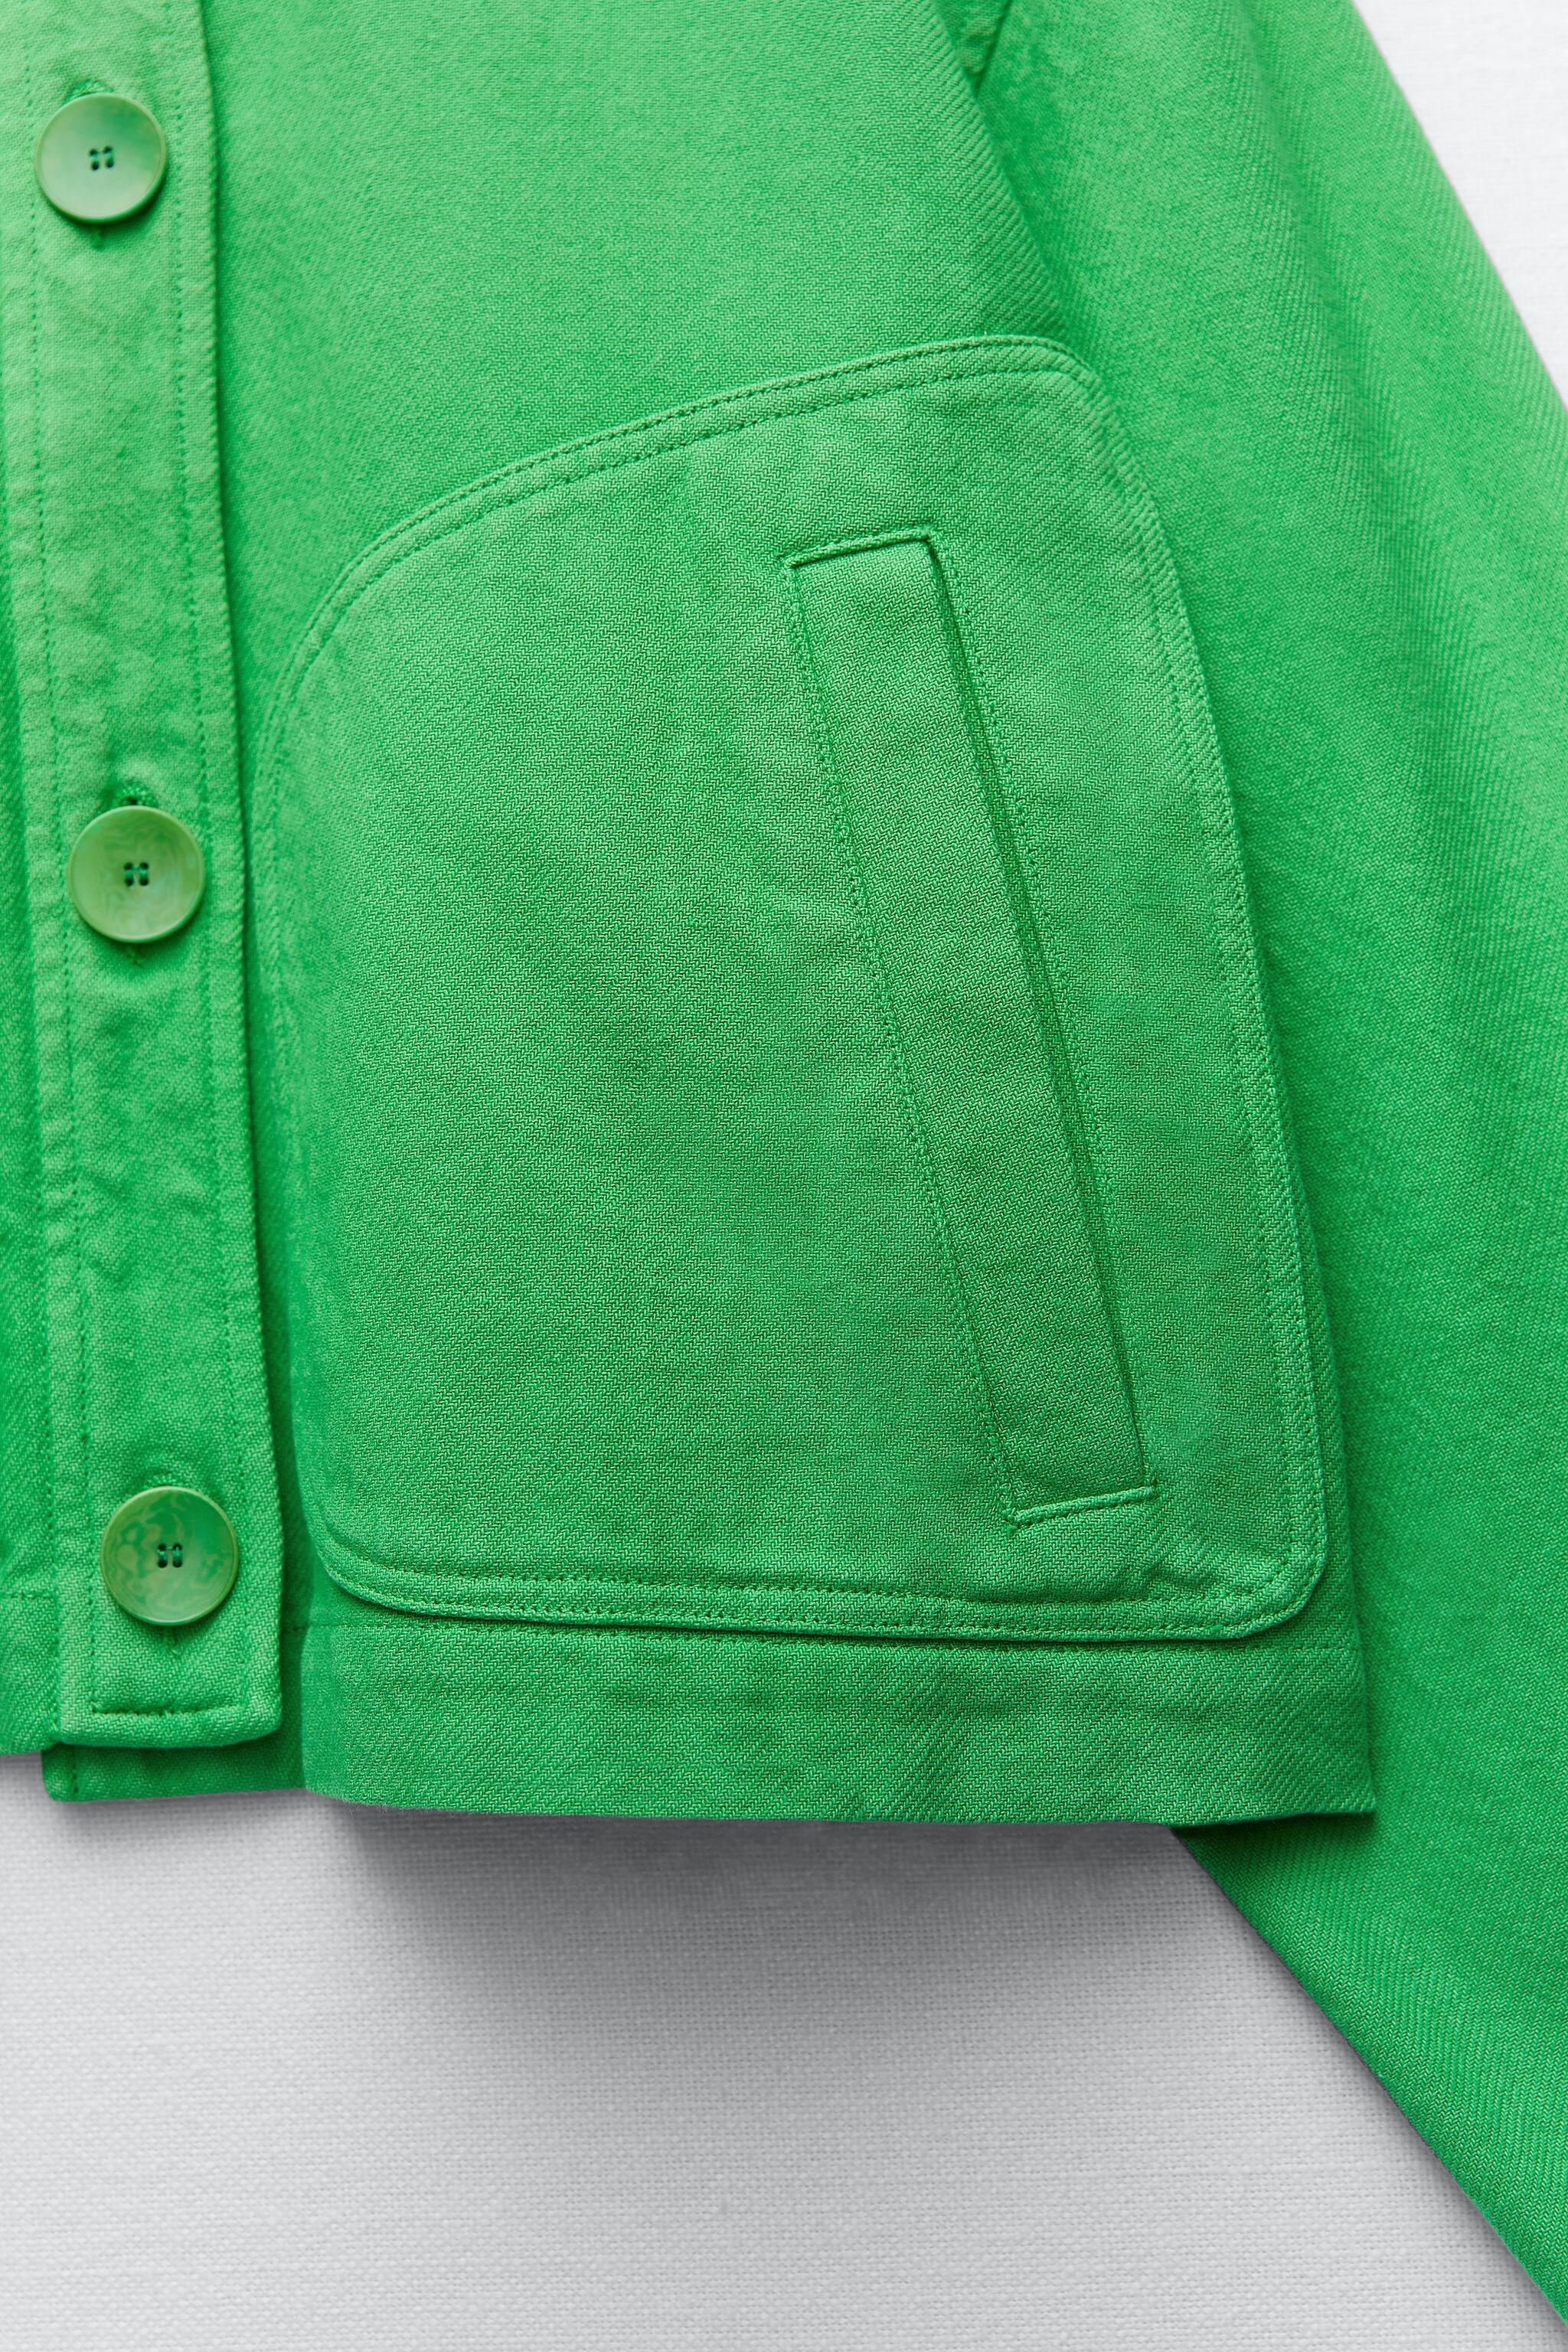 SOLID COLOR CROPPED JACKET 8